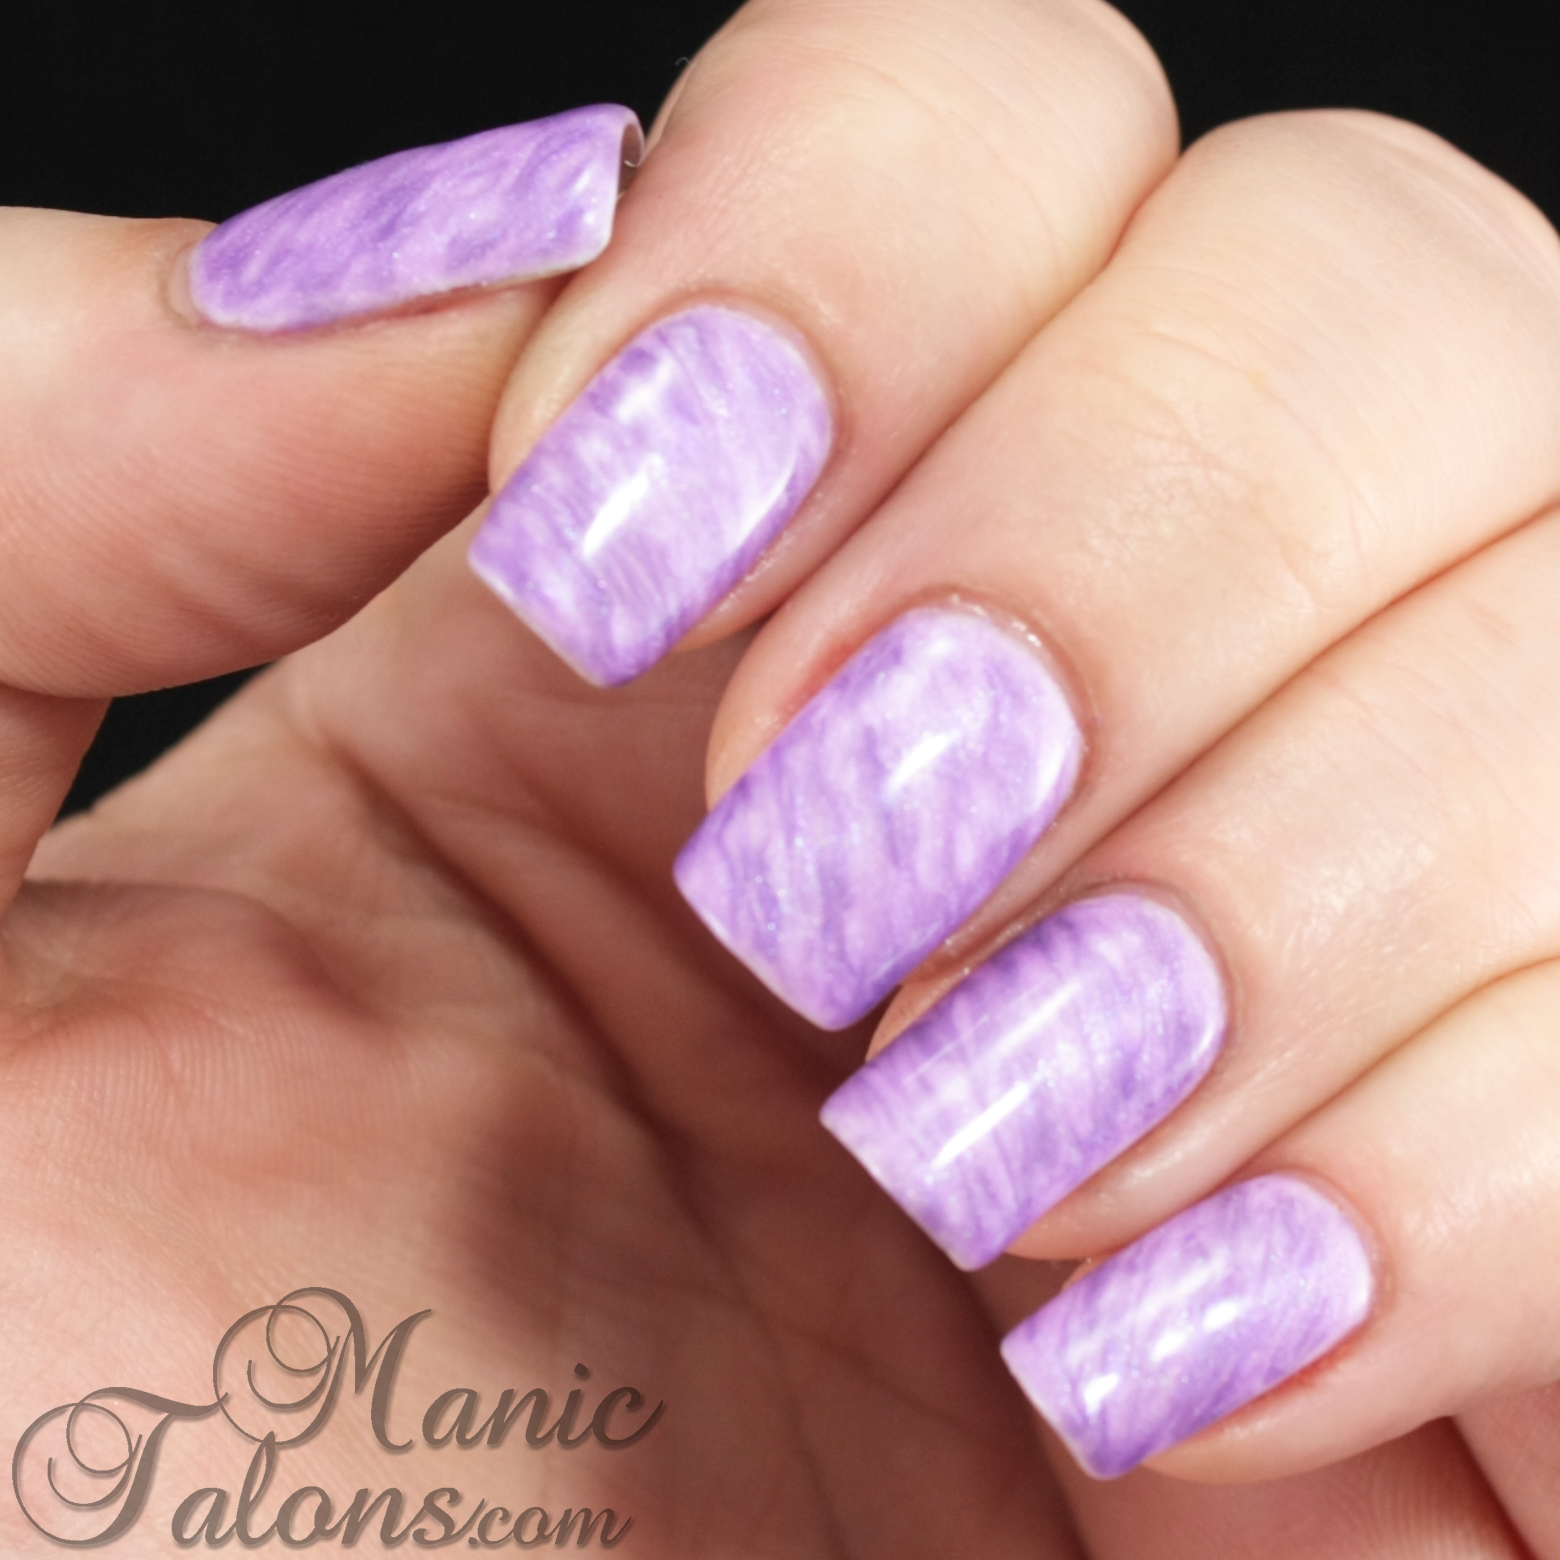 Manic Talons Nail Design: Tutorial: Simple Dry Marble Technique